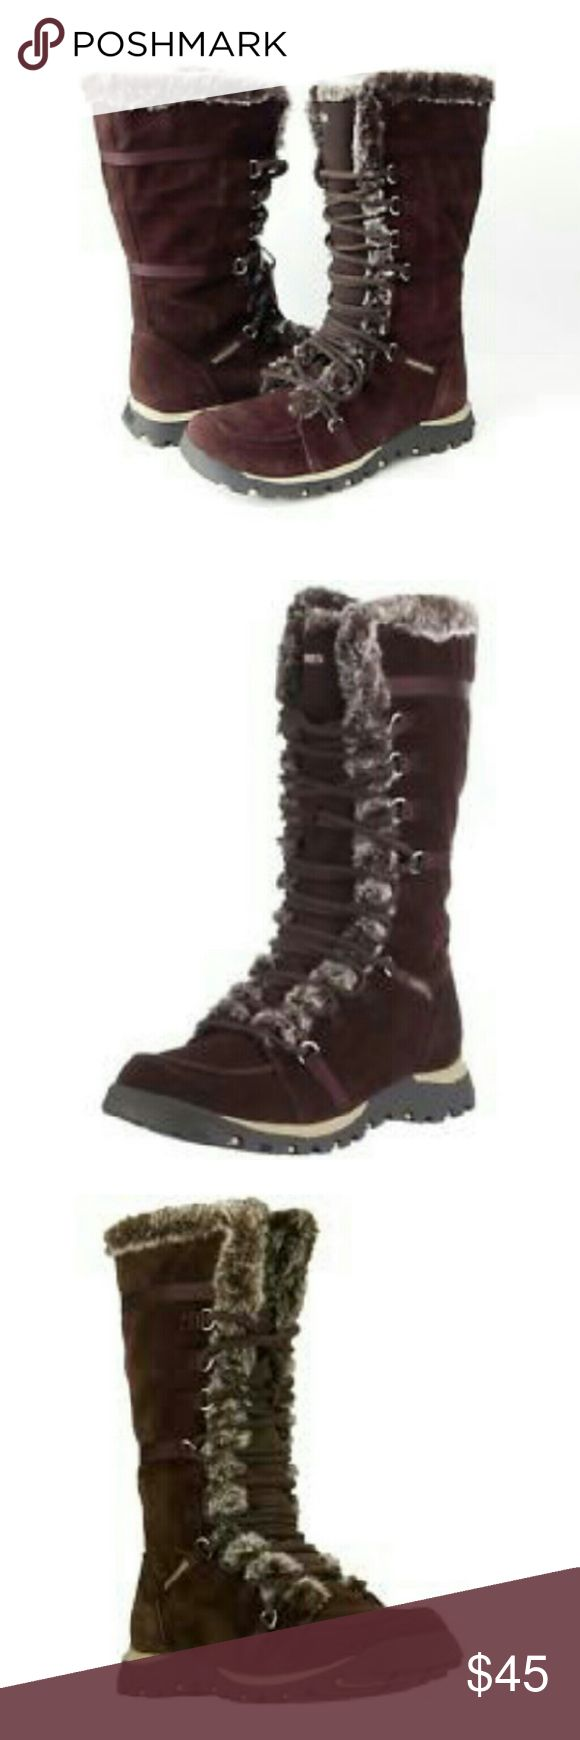 "Skechers Grand Jams Unlimited brown boots These gorgeously functional Skechers boots are perfect for the fall & winter seasons! Brown suede with  grayish faux fur lining. 10.5"" shaft, 6"" top width, fold down cuff option, traction sole. SKECHERS most popular boot, this boot keeps you warm and looking stylish. Shoelaces lace up. Skechers logo on back heel and on sides. IN LIKE NEW CONDITION, NO DAMAGES. Grab yours for less, sold out online! Skechers Shoes"